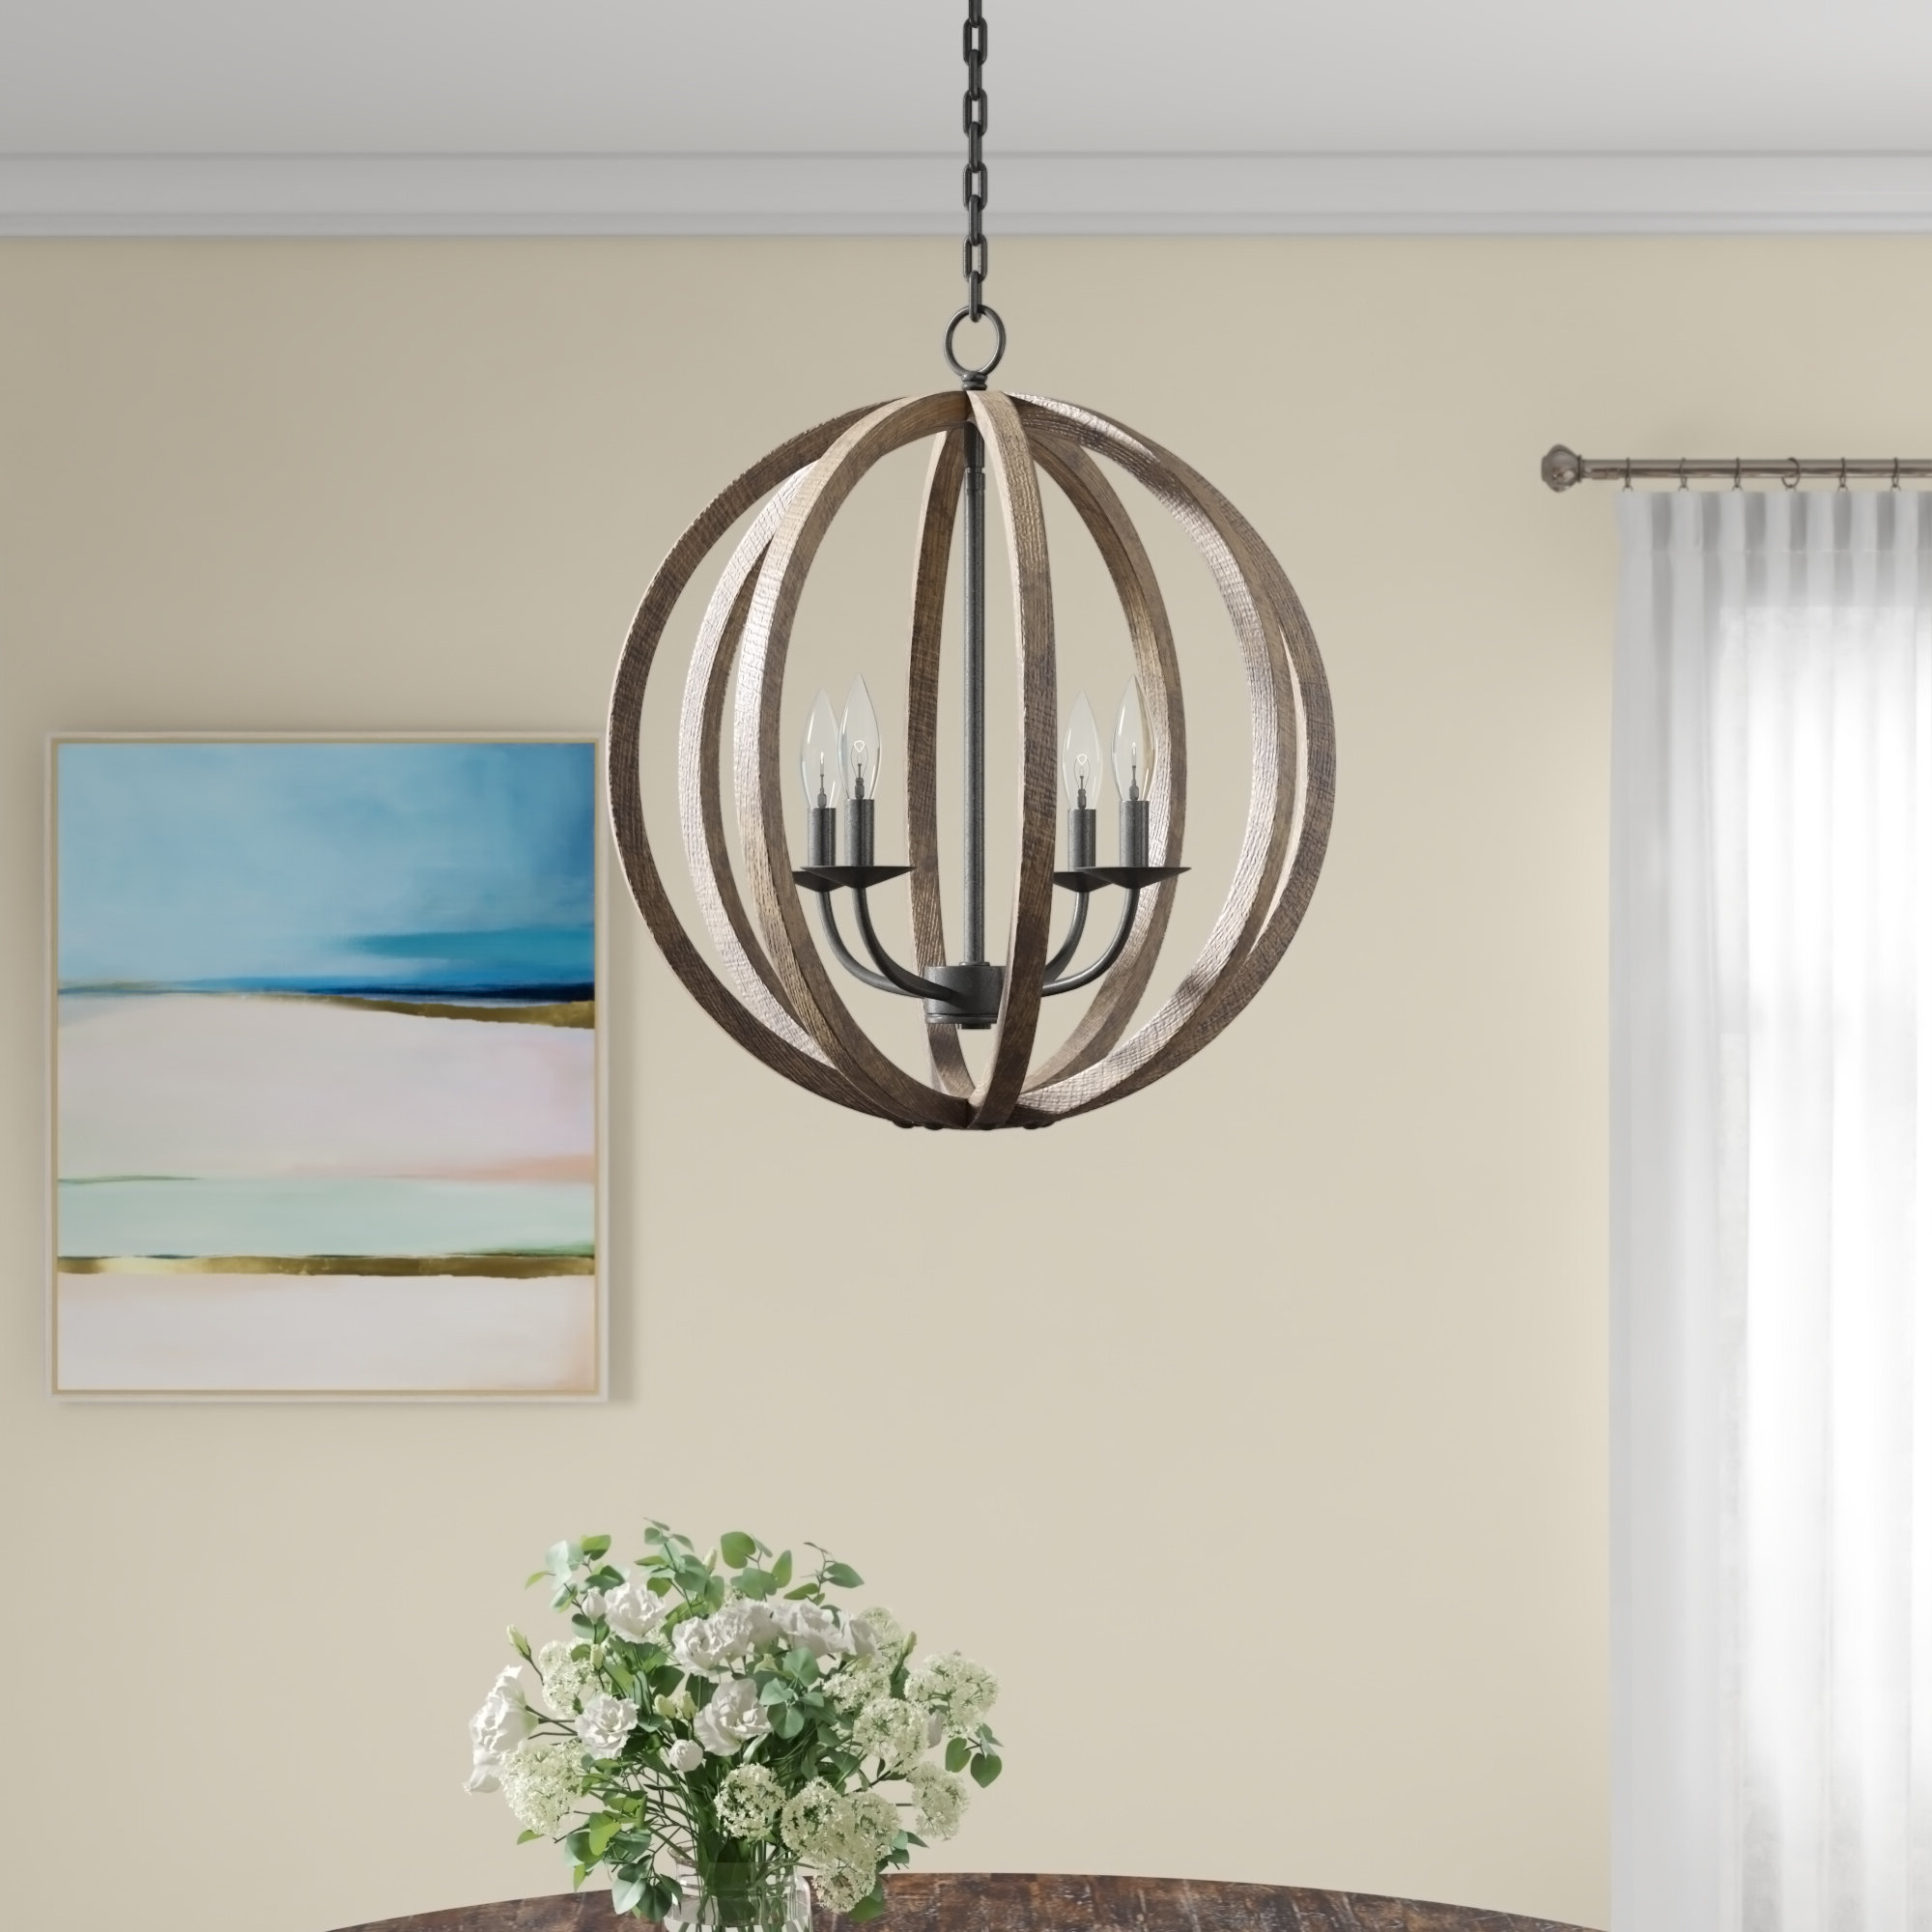 Donna 4 Light Globe Chandeliers Throughout Latest Ricciardo 4 Light Globe Chandelier (View 2 of 25)